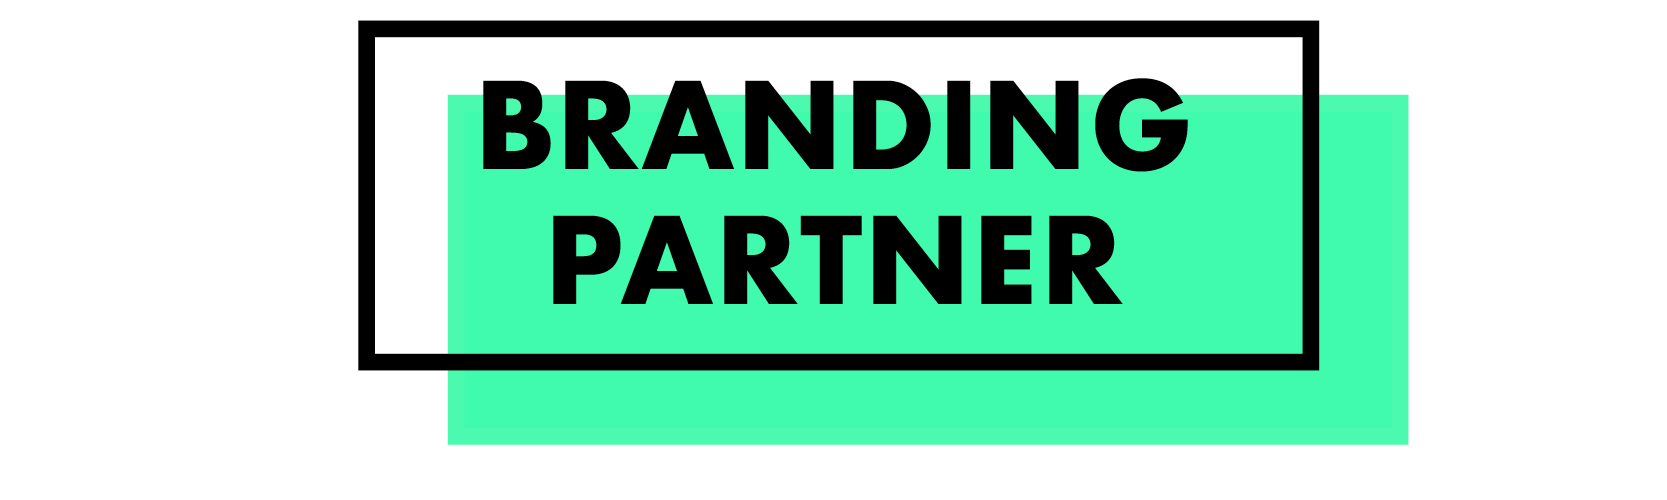 branding-partner-green-title2